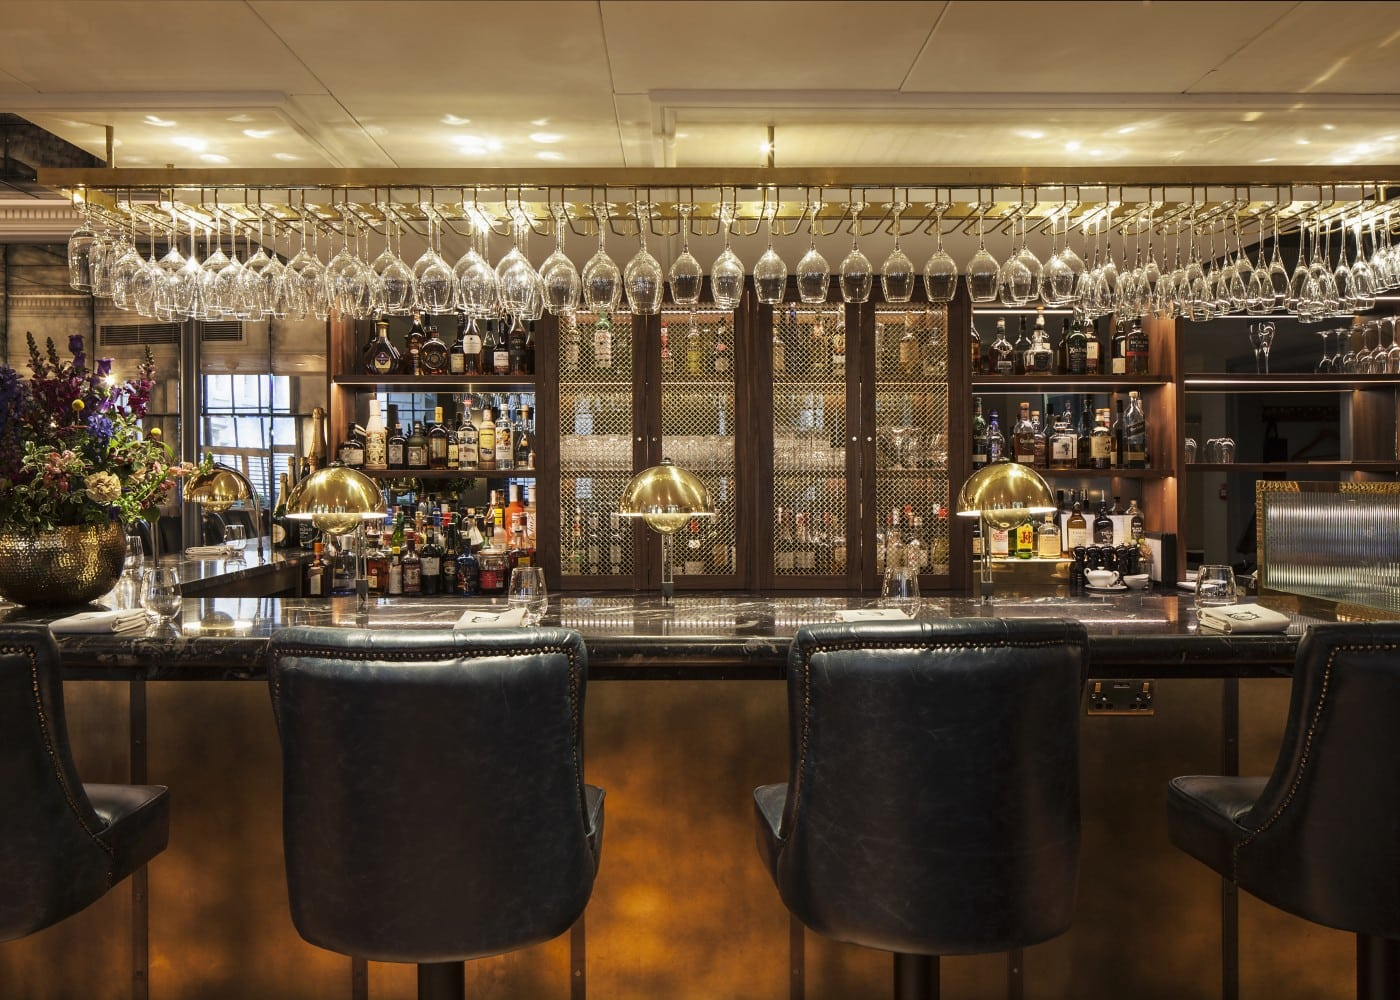 hospitality lighting design: bar at Dukes with dim lighting